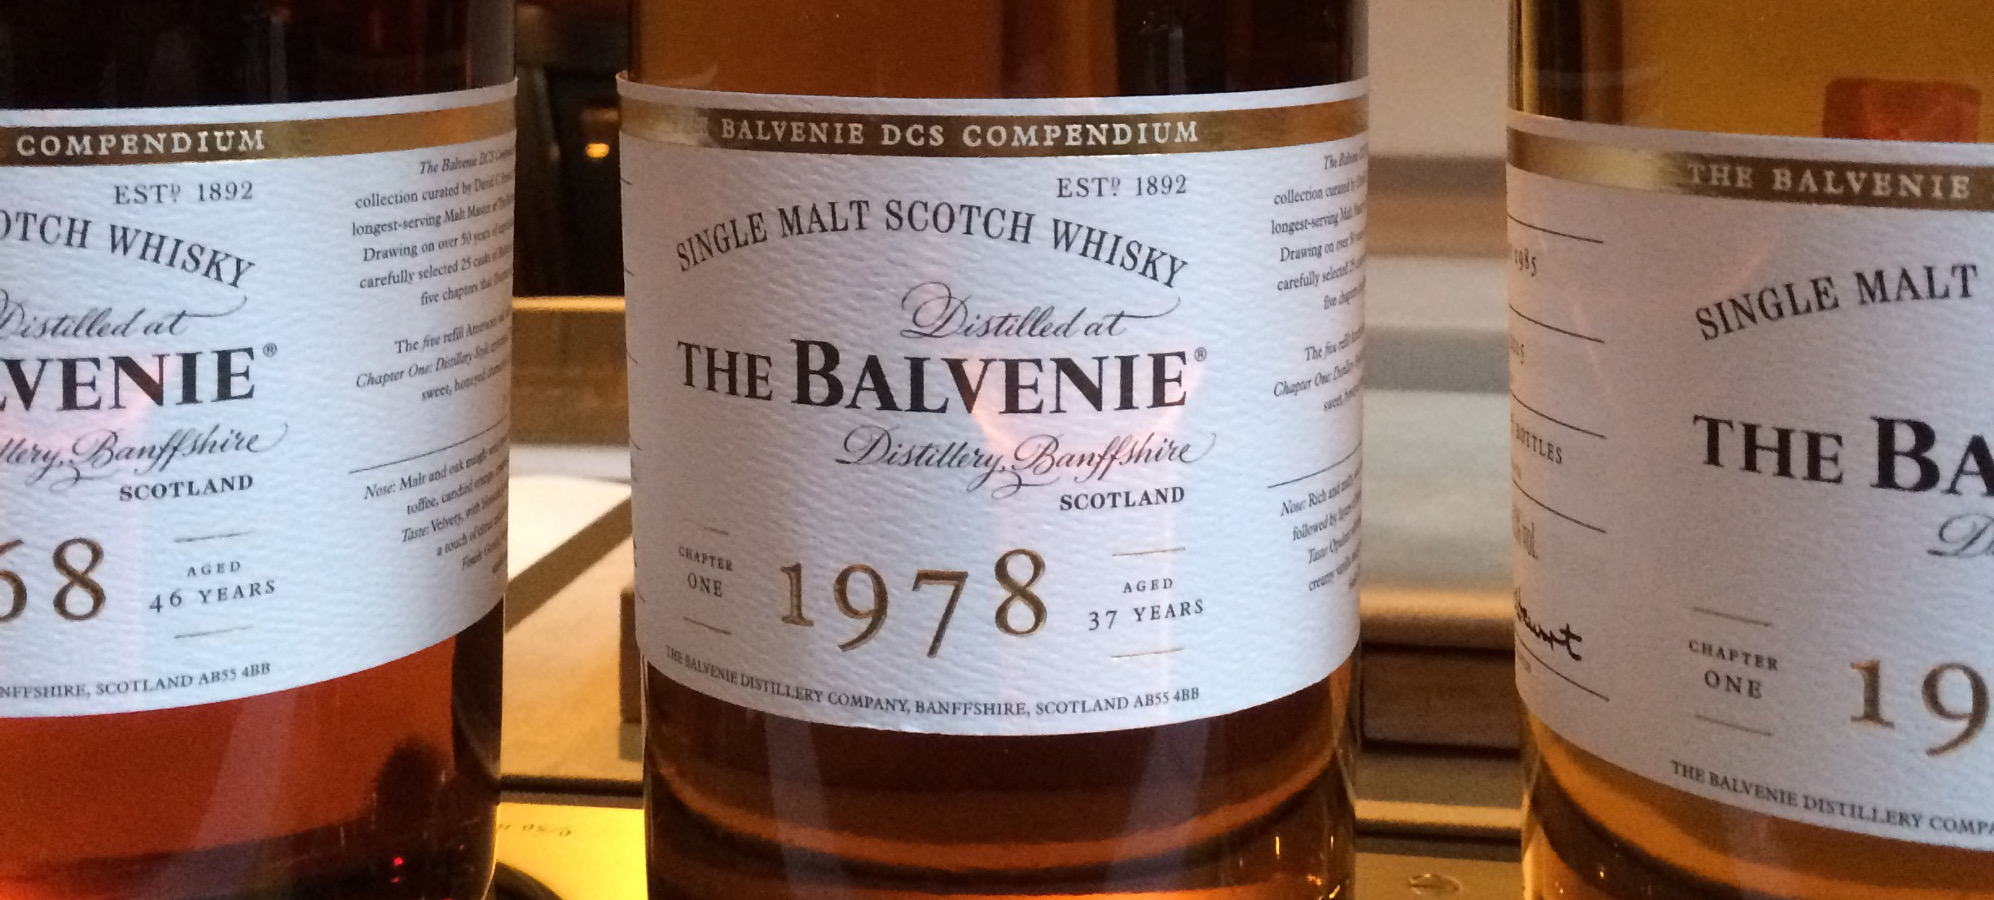 Balvenie 1978 DCS Compendium Chapter One